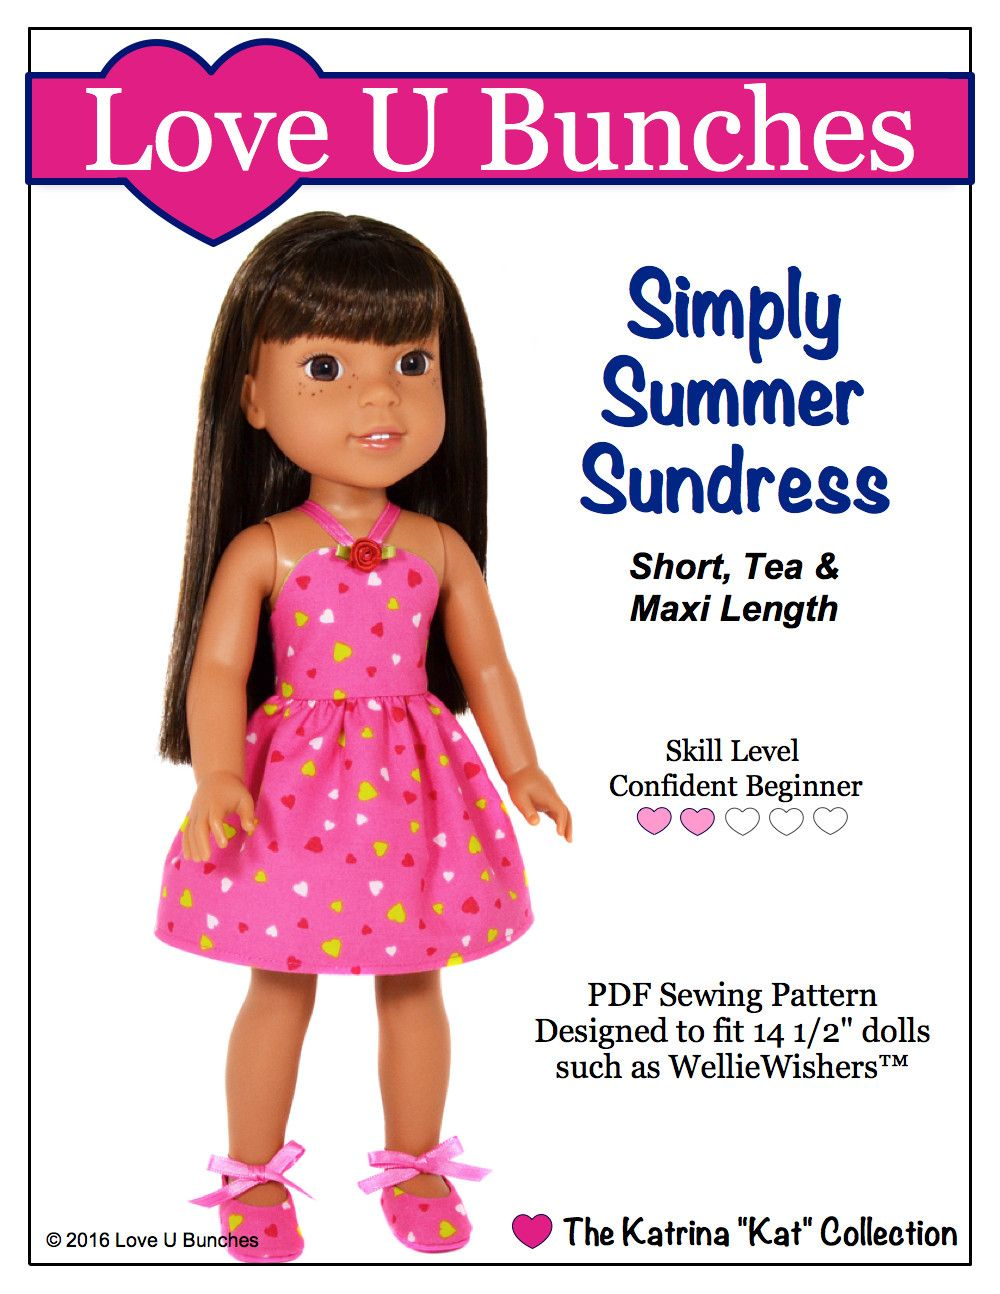 Simply summer sundress for welliewishers dolls ag pinterest